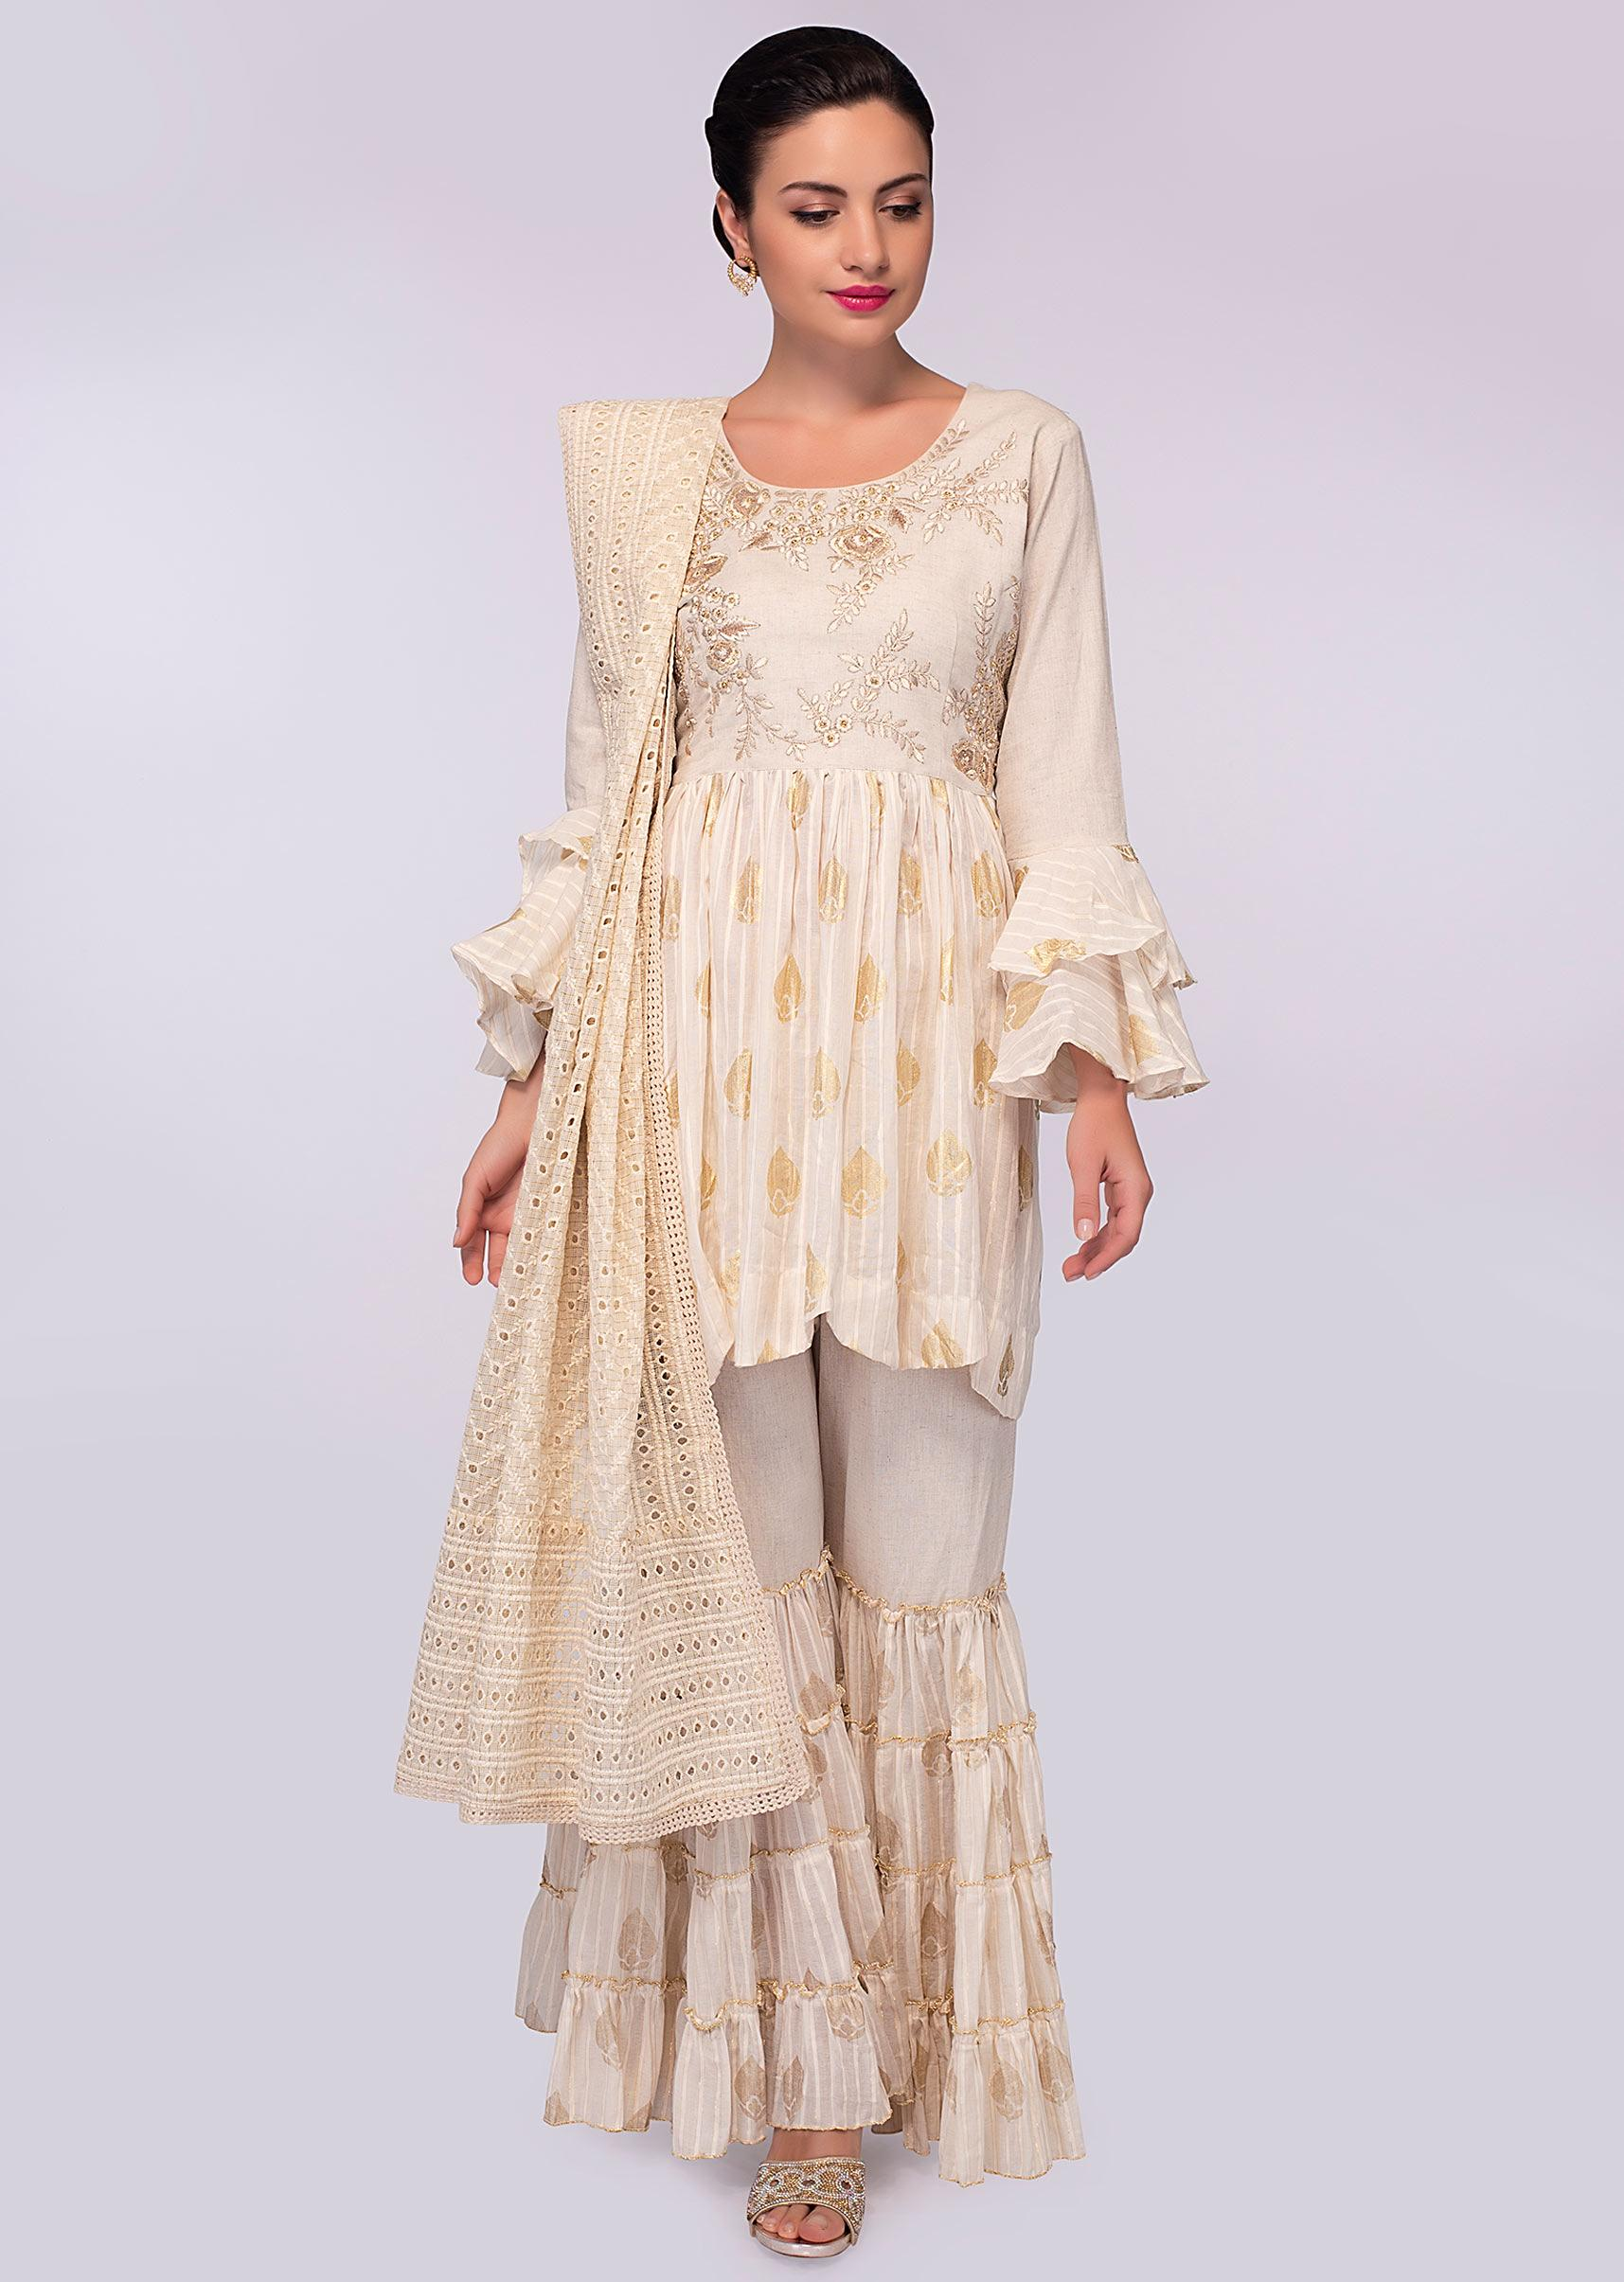 46080a6082 off white sharara suit in foil printed butti only on kalki